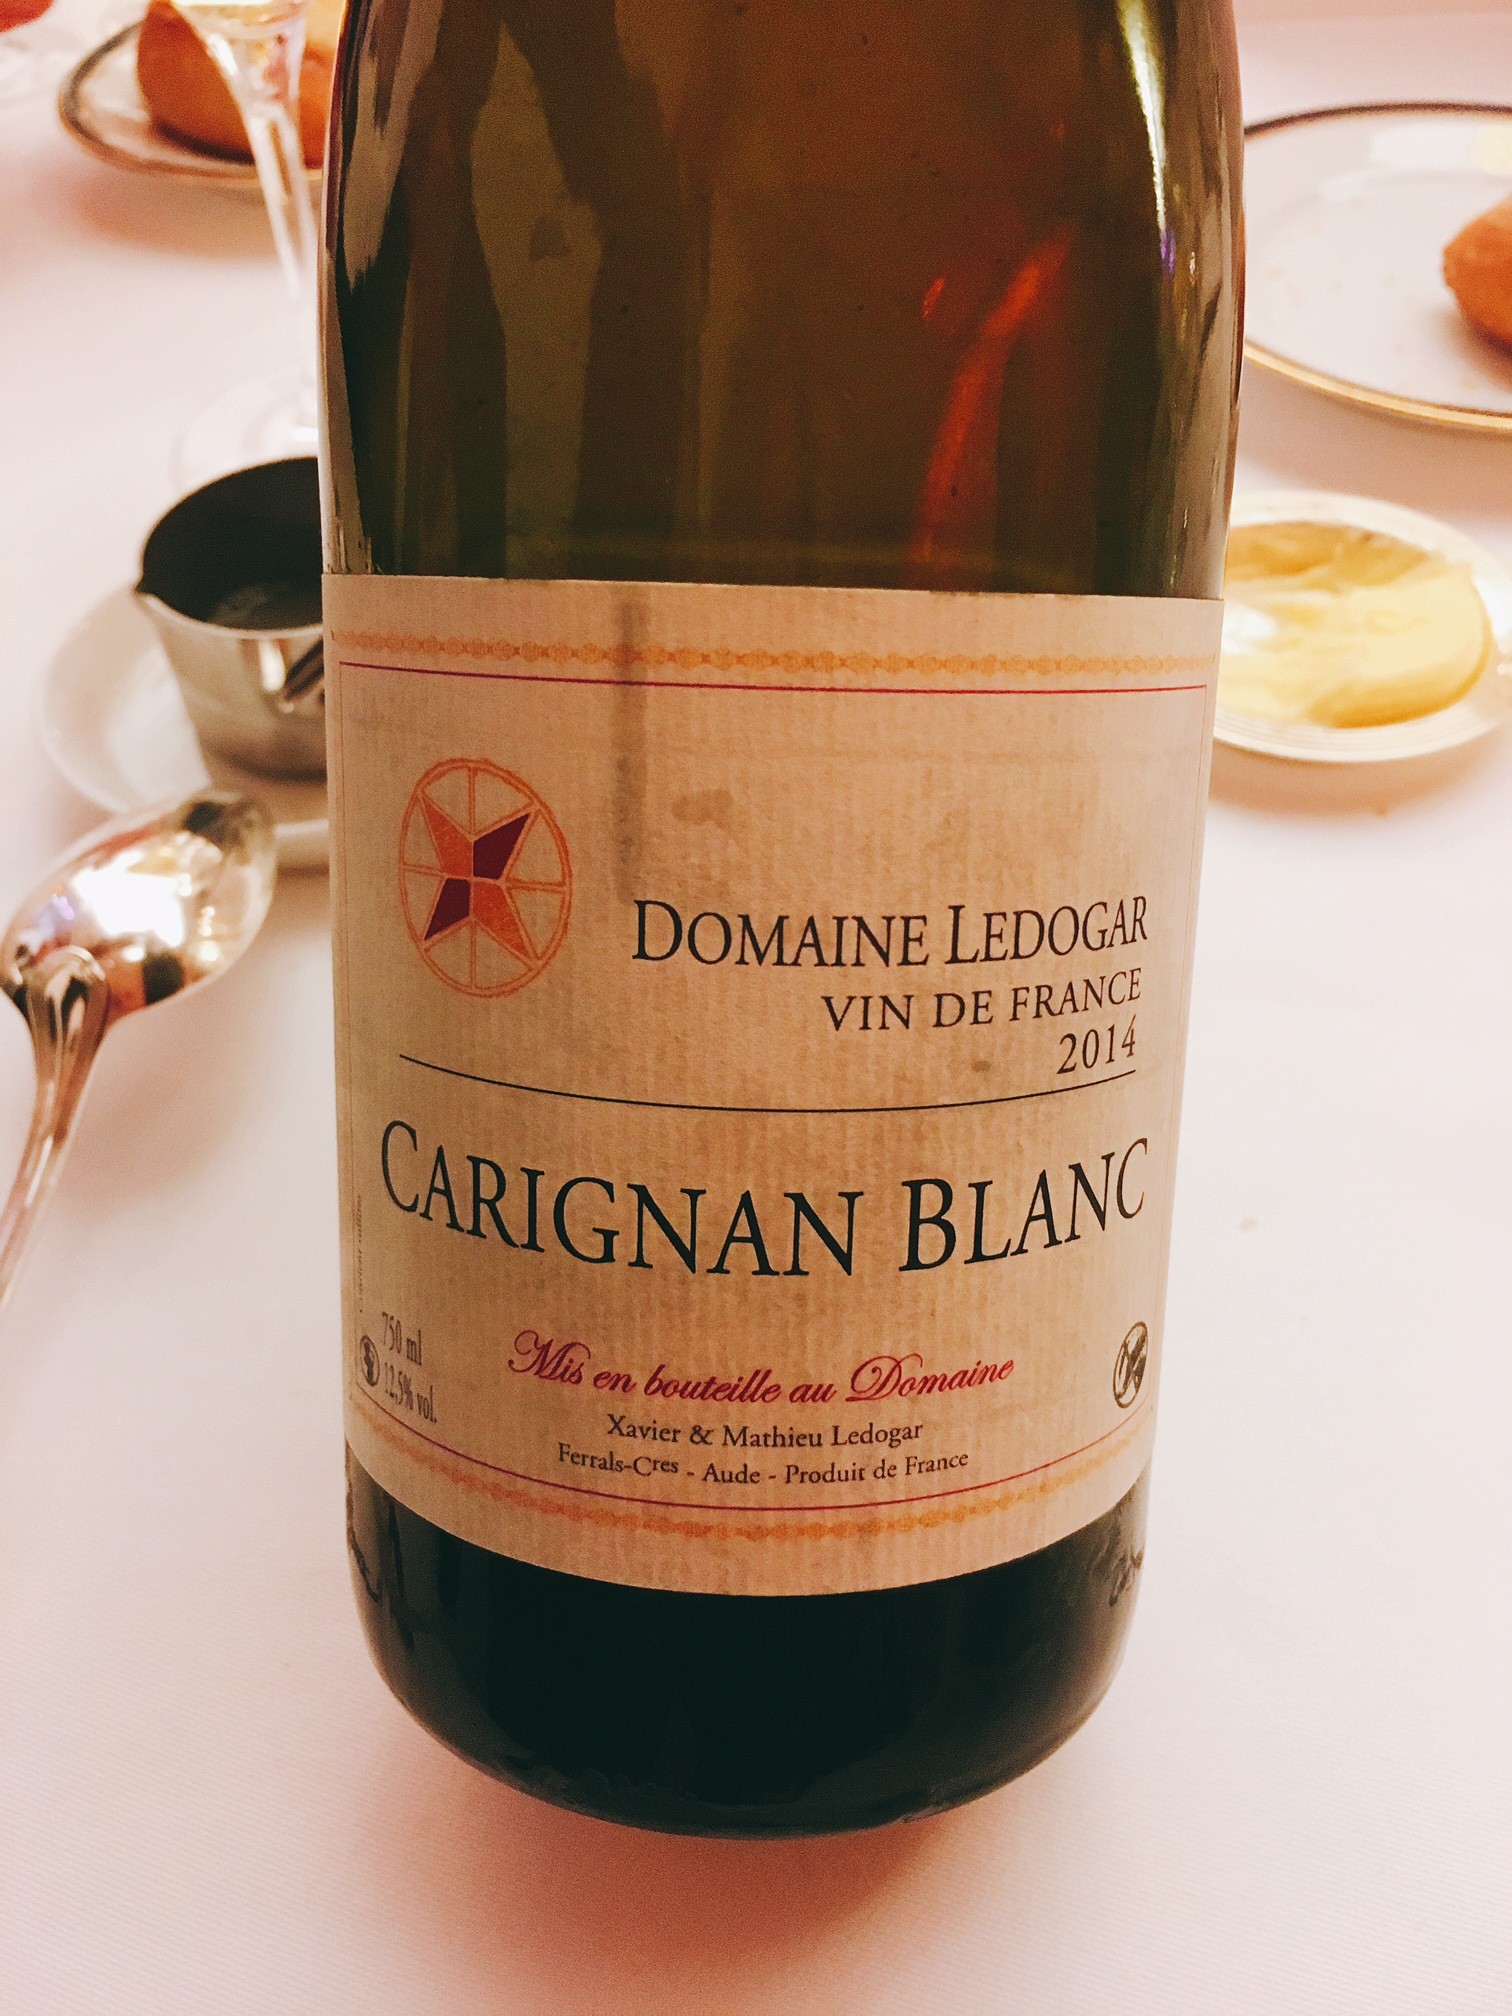 gout-de-france-frankreich-berlin-good-france-carignan-blanc